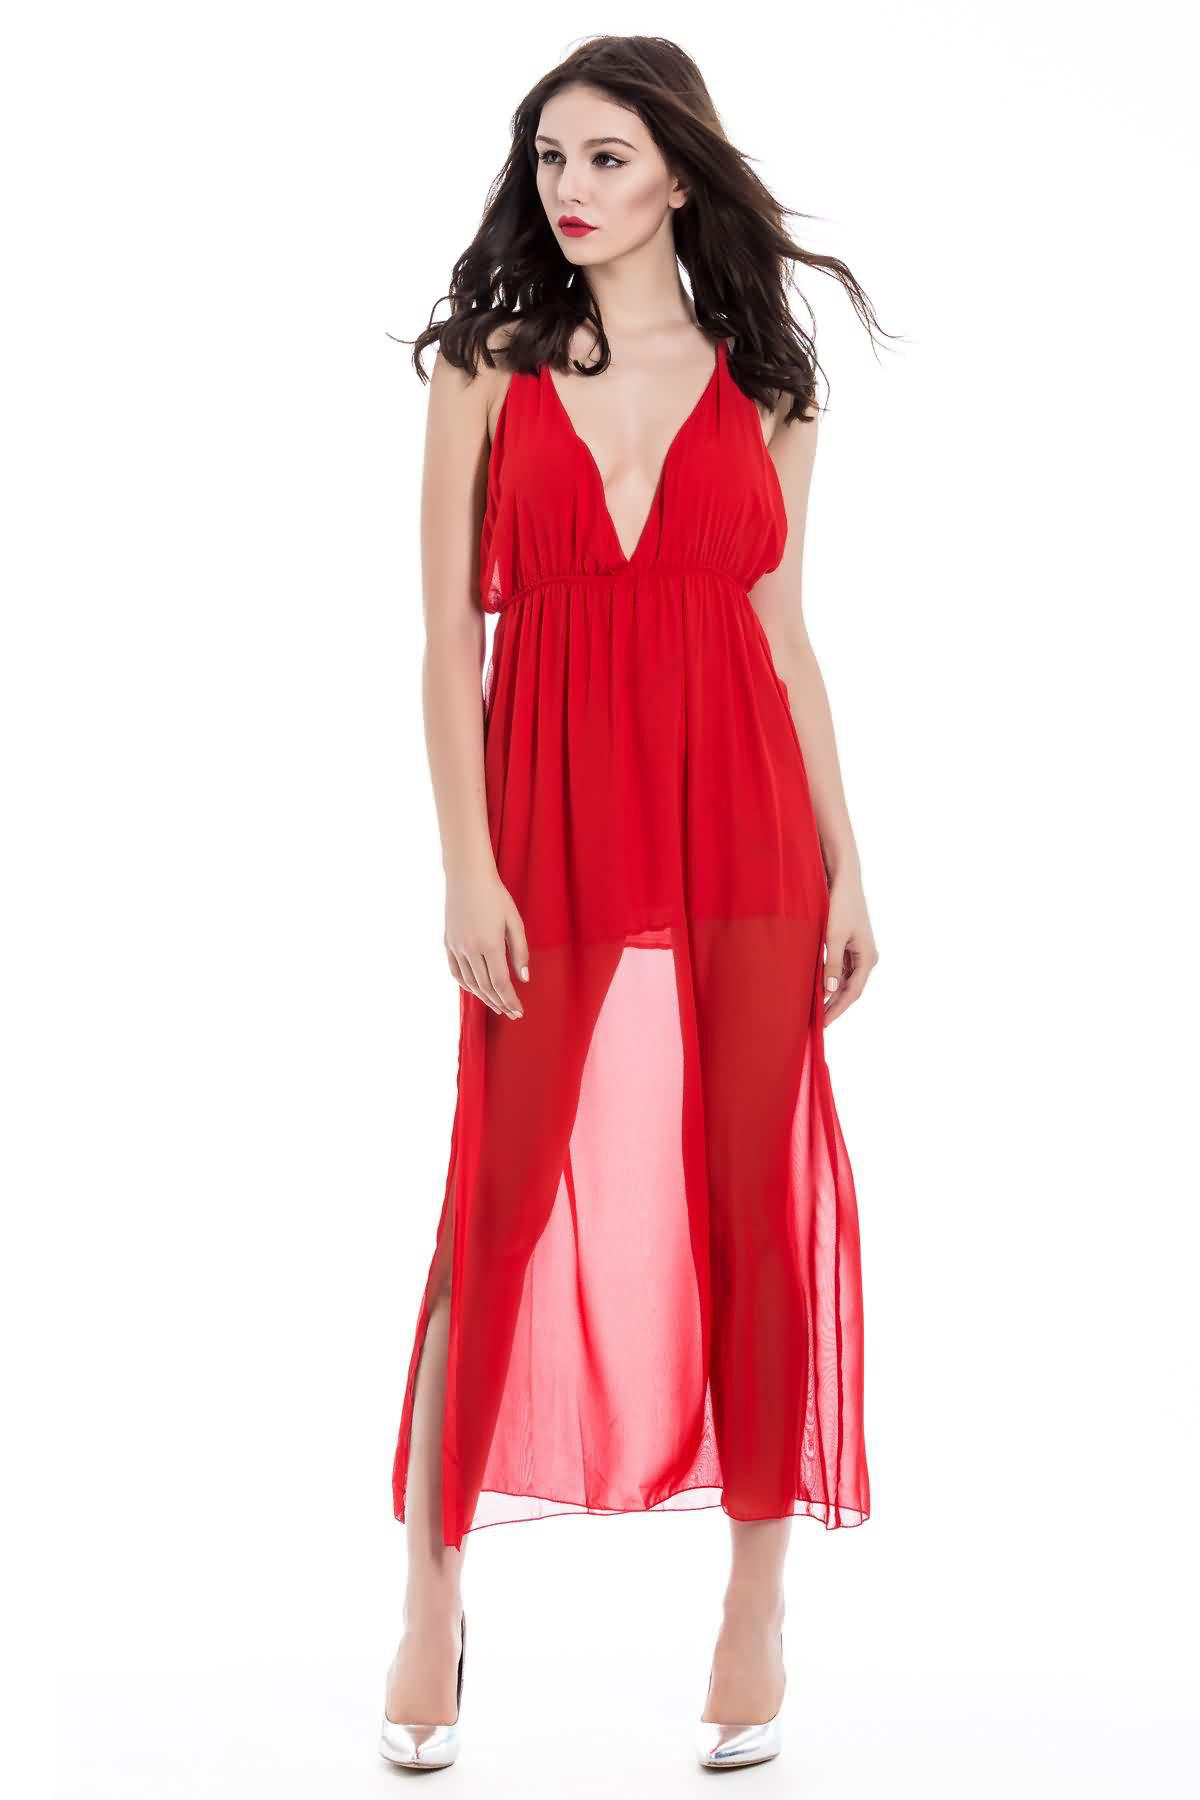 Alluring Slit Side Design Sleeveless Backless Plunging Neck Red Color Spaghetti Strap Dress - RED S